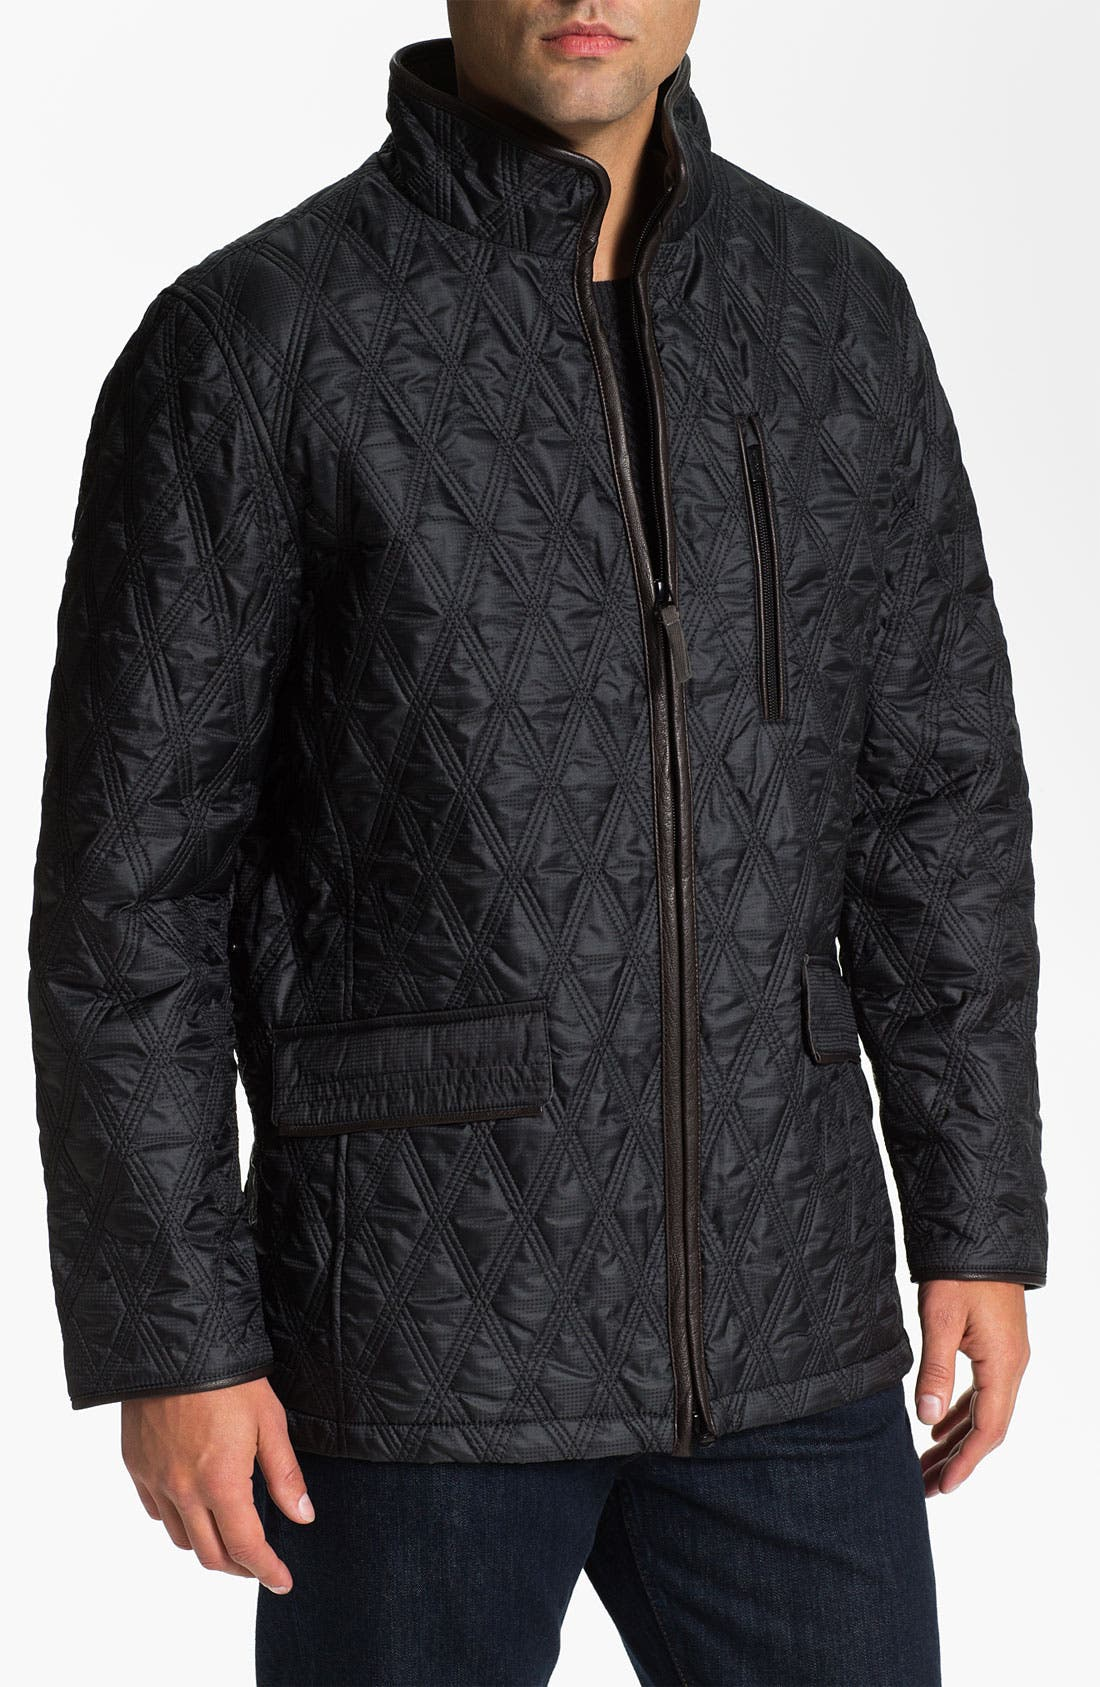 Alternate Image 1 Selected - RAINFOREST Quilted Jacket